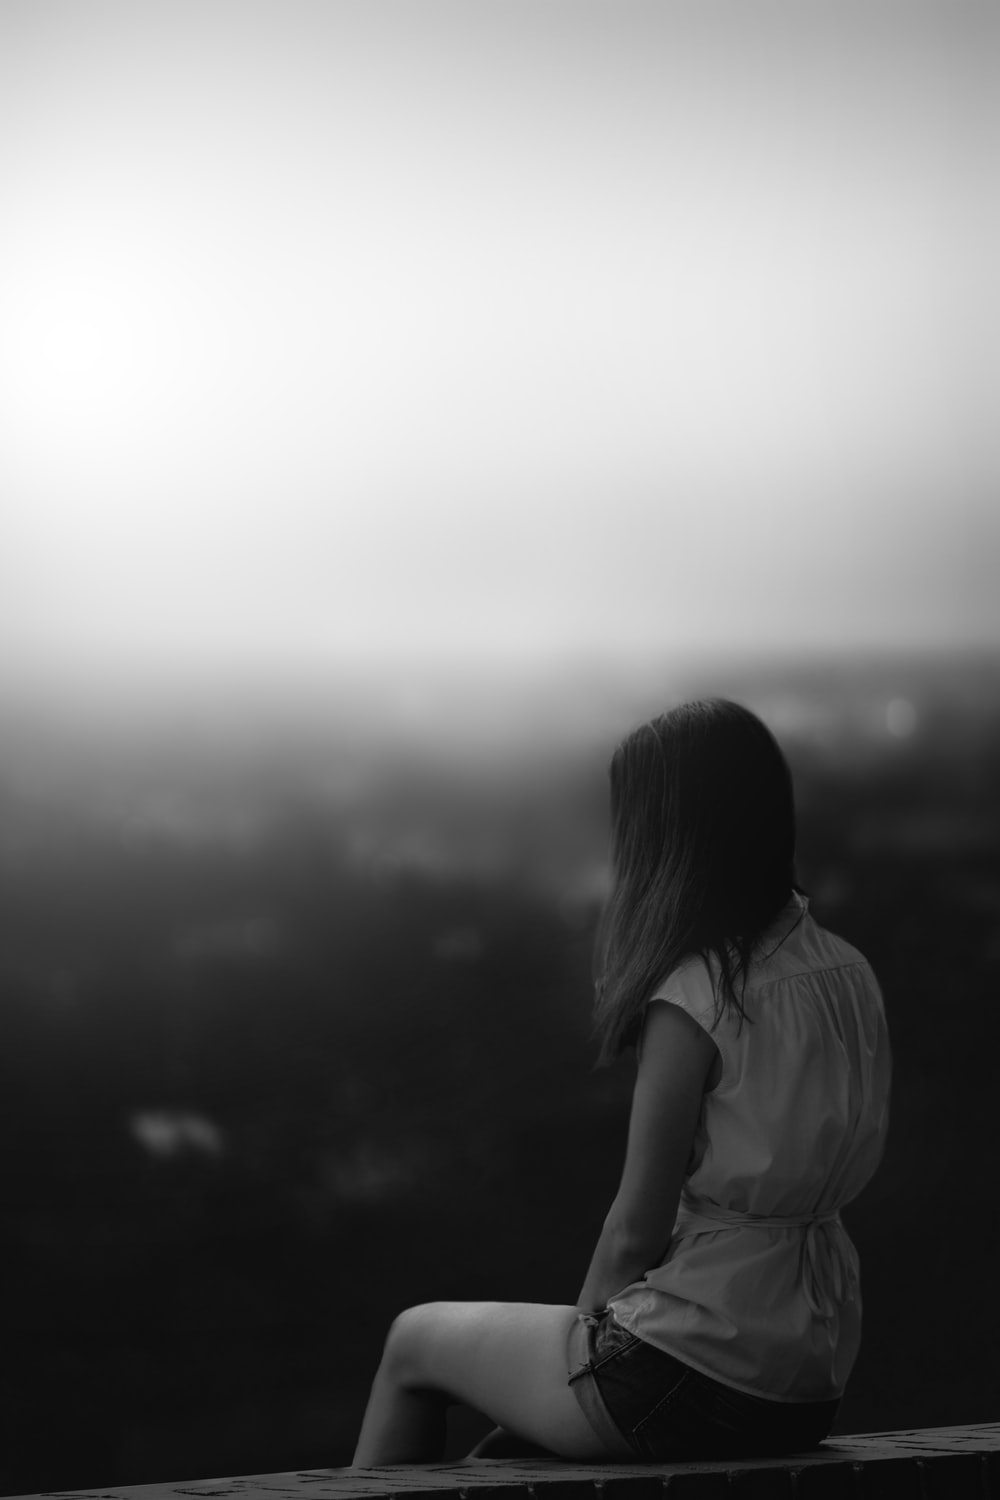 grayscale photo of woman in white shirt